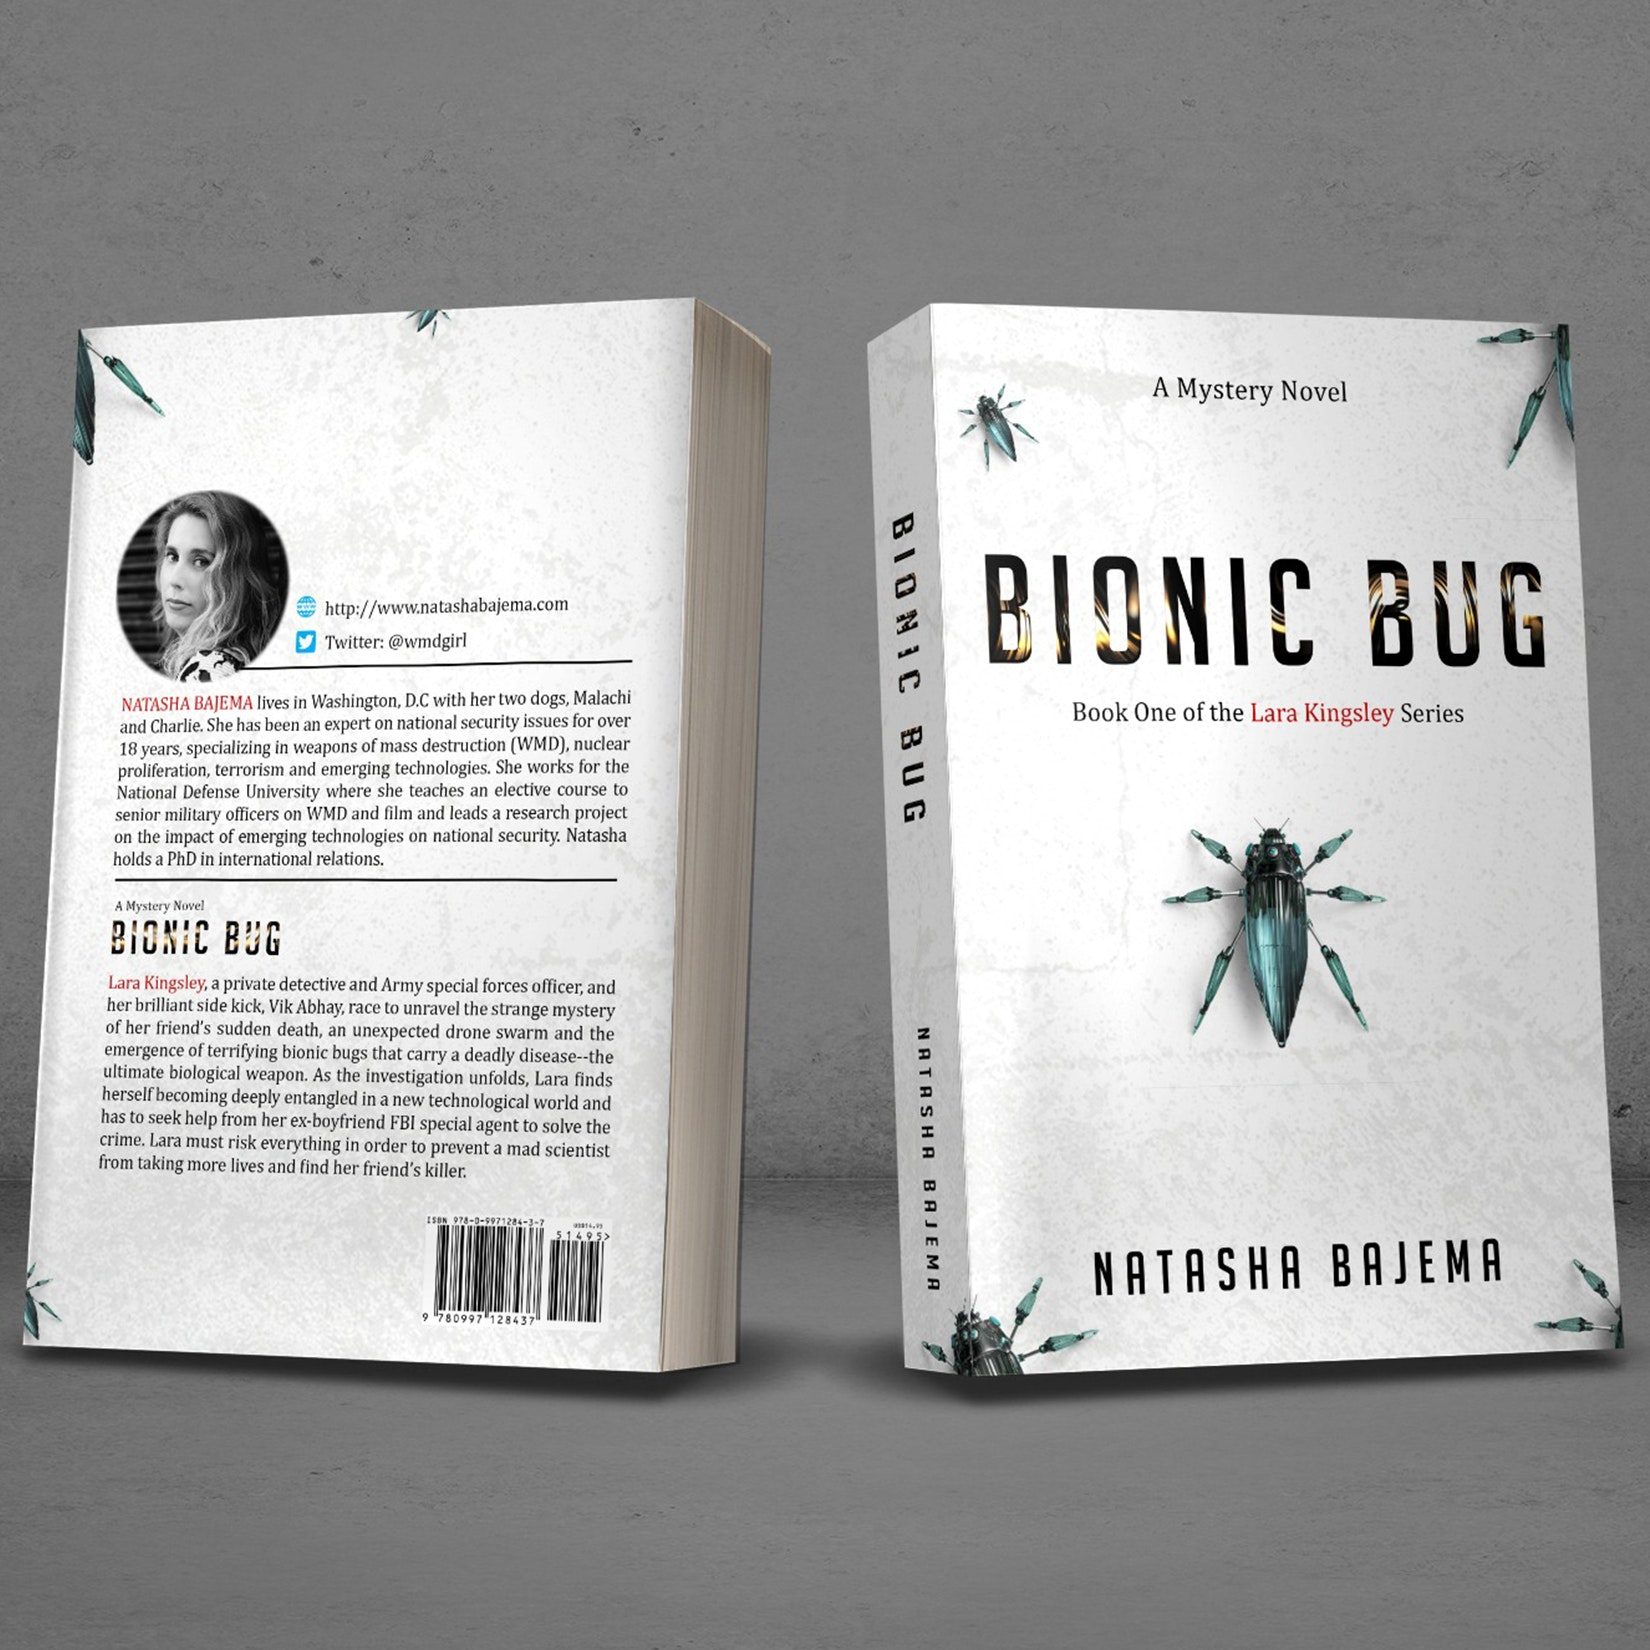 Book cover with a spooky bio-tech vibe